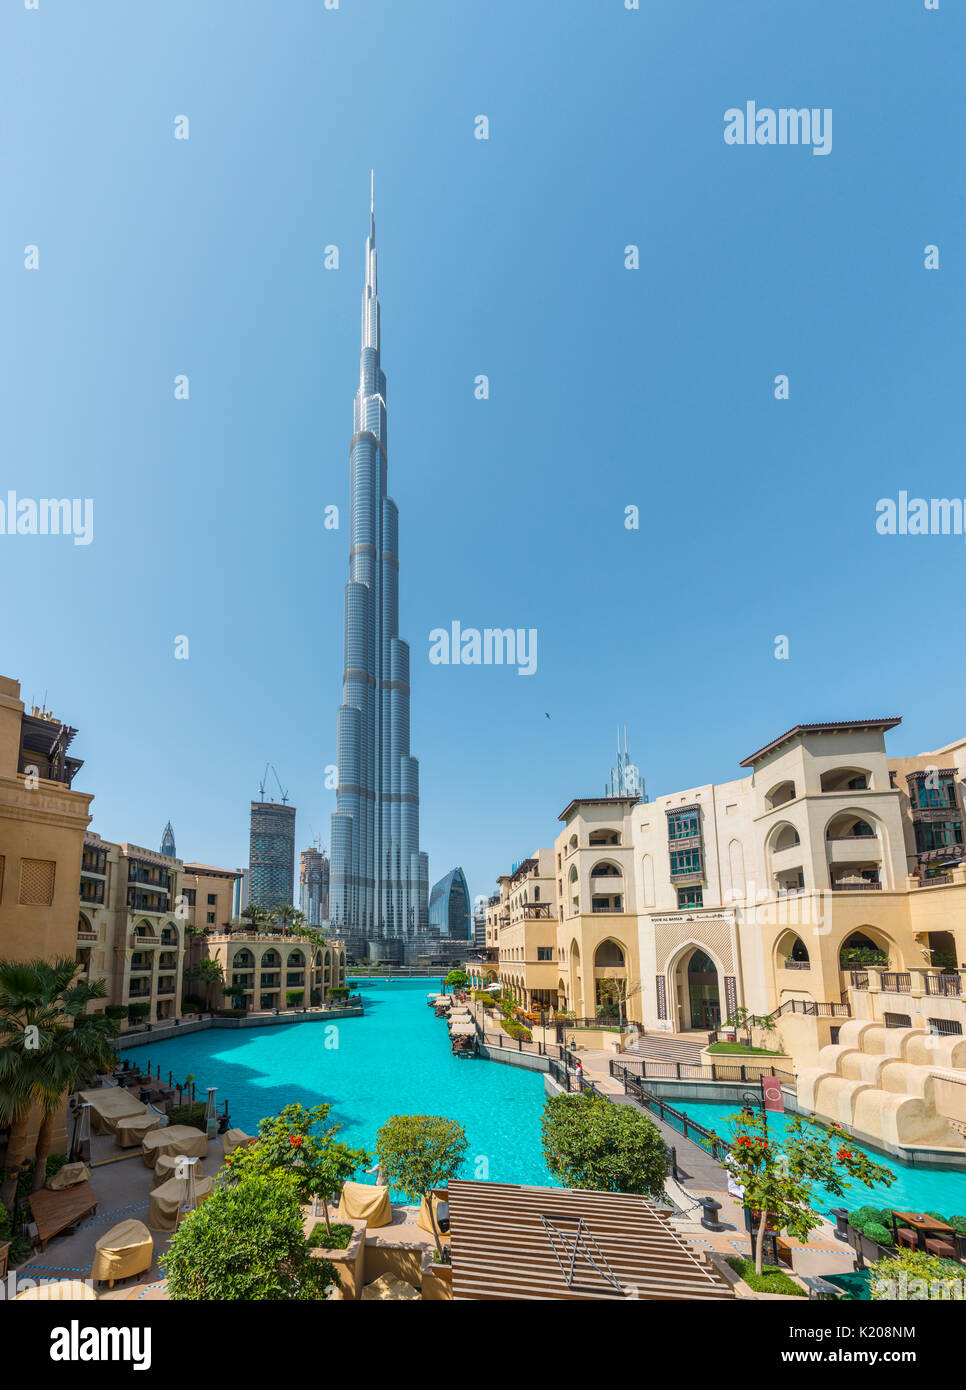 Burj Khalifa with artificial lake, Dubai, Emirate Dubai, United Arab Emirates - Stock Image